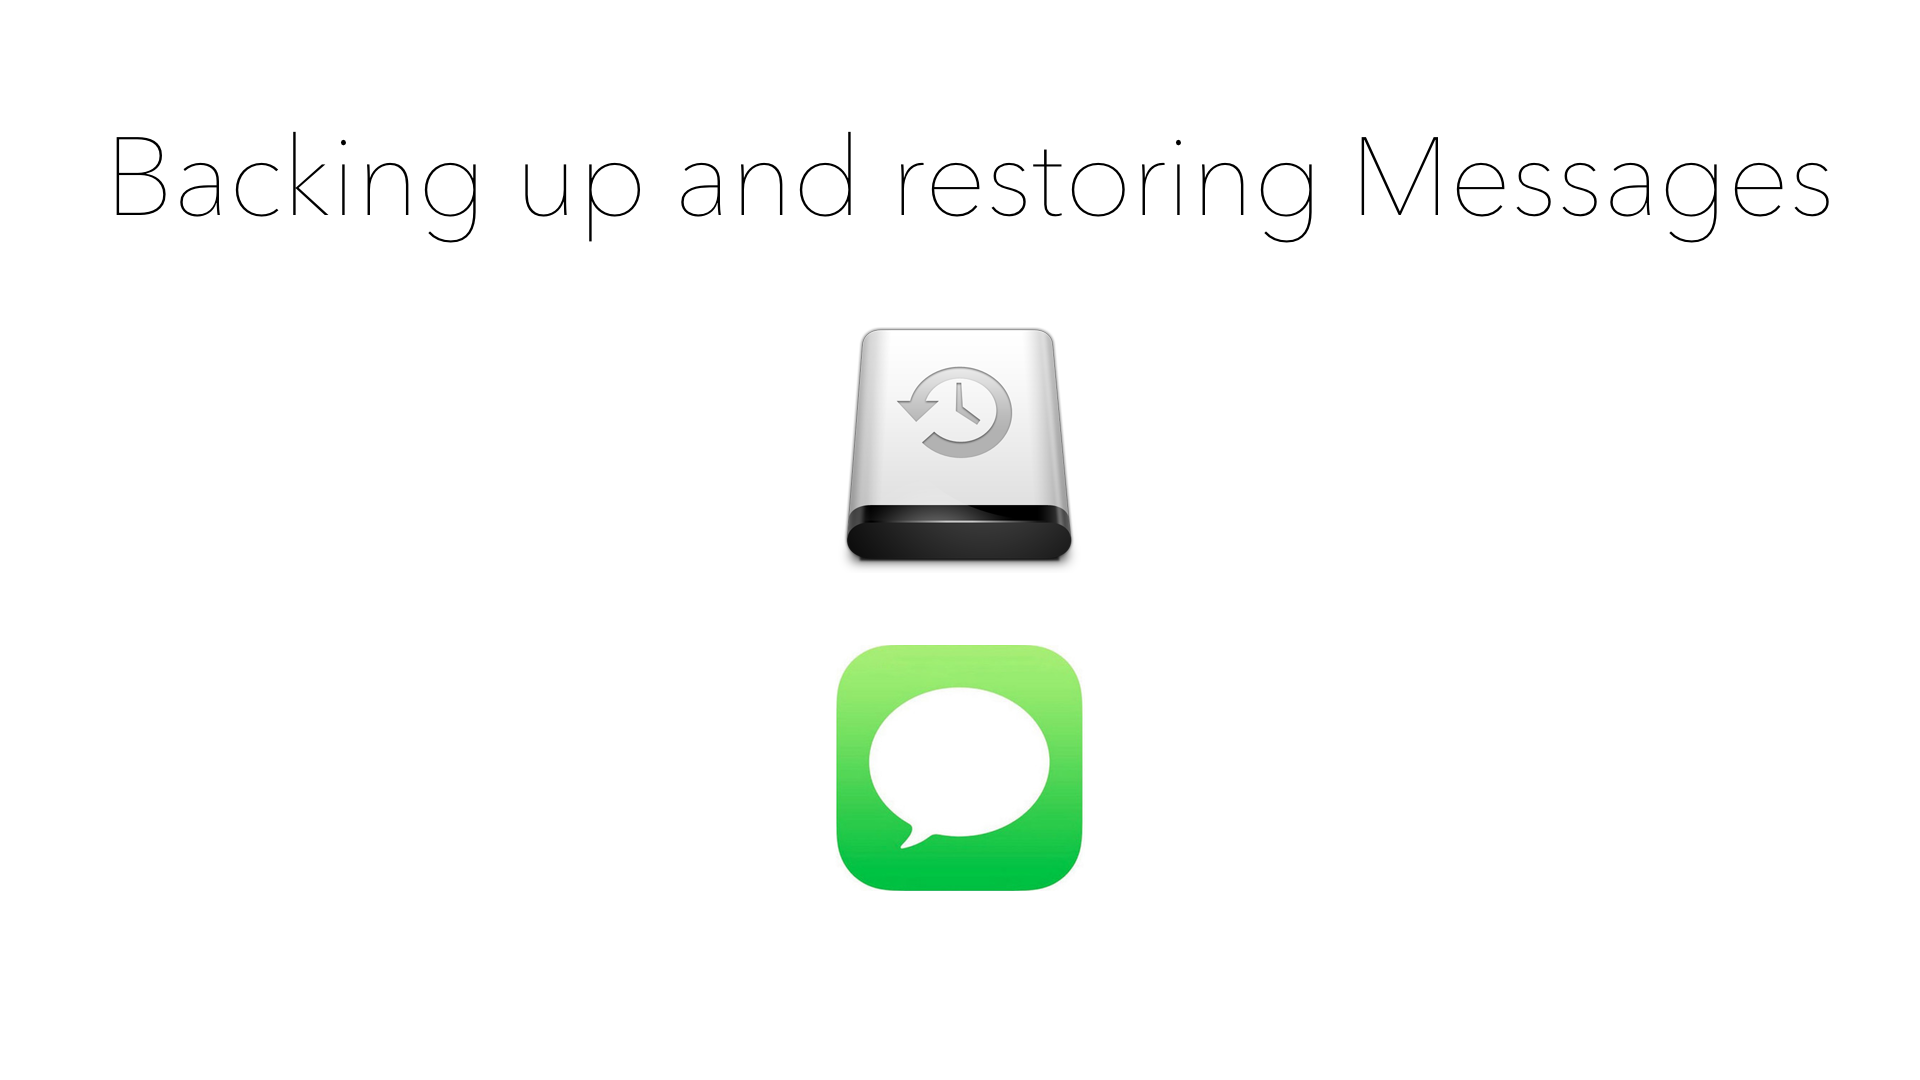 Backing up and restoring Messages